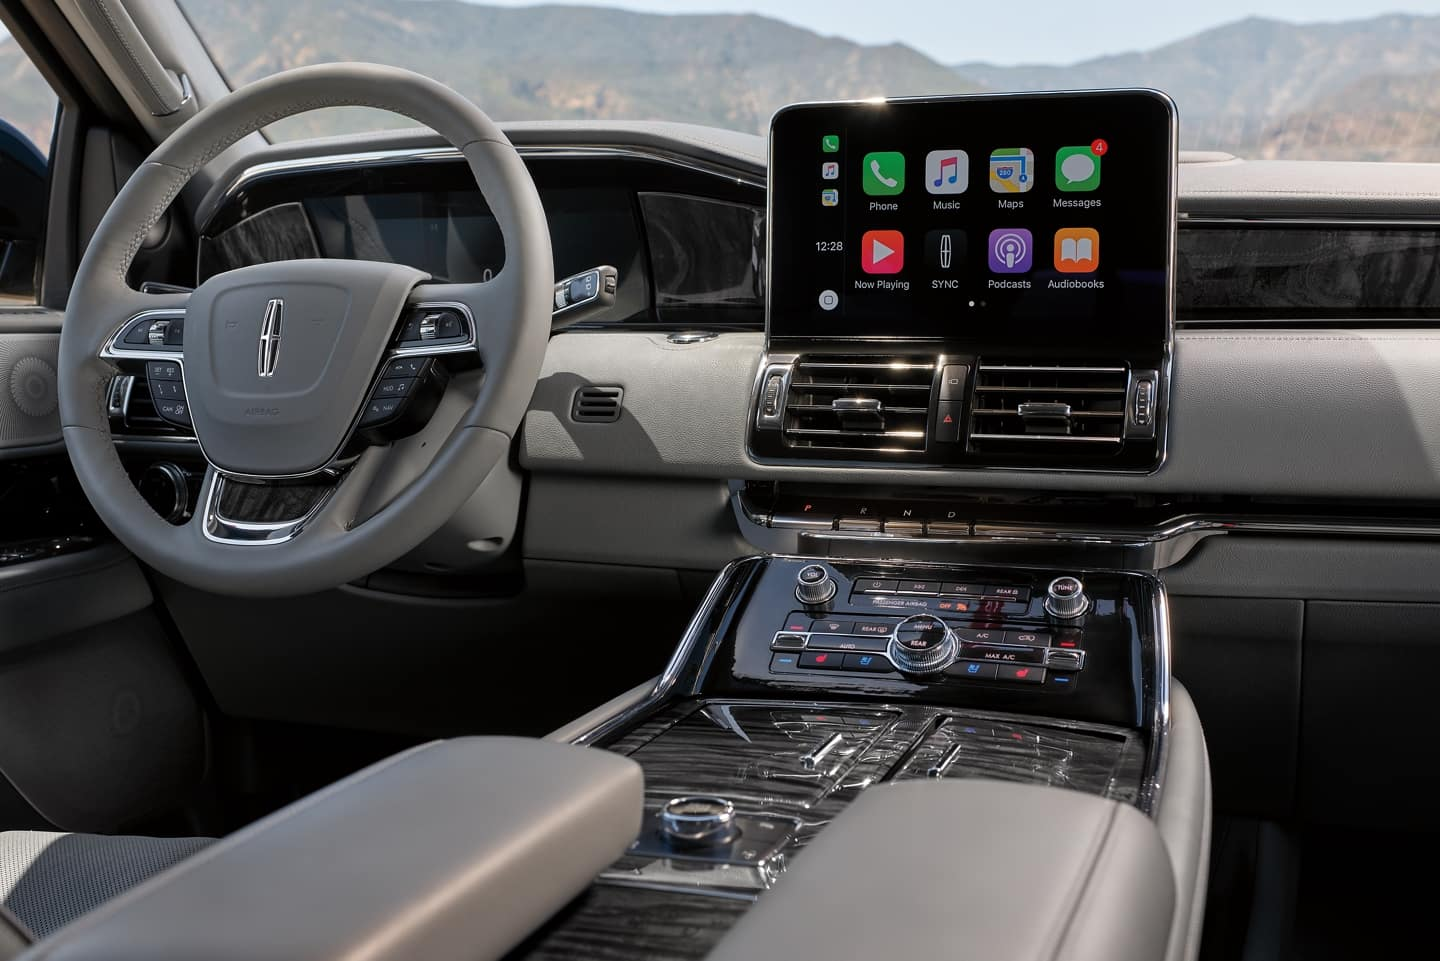 The Lincoln Navigator SUV has ability to Sync your Apps